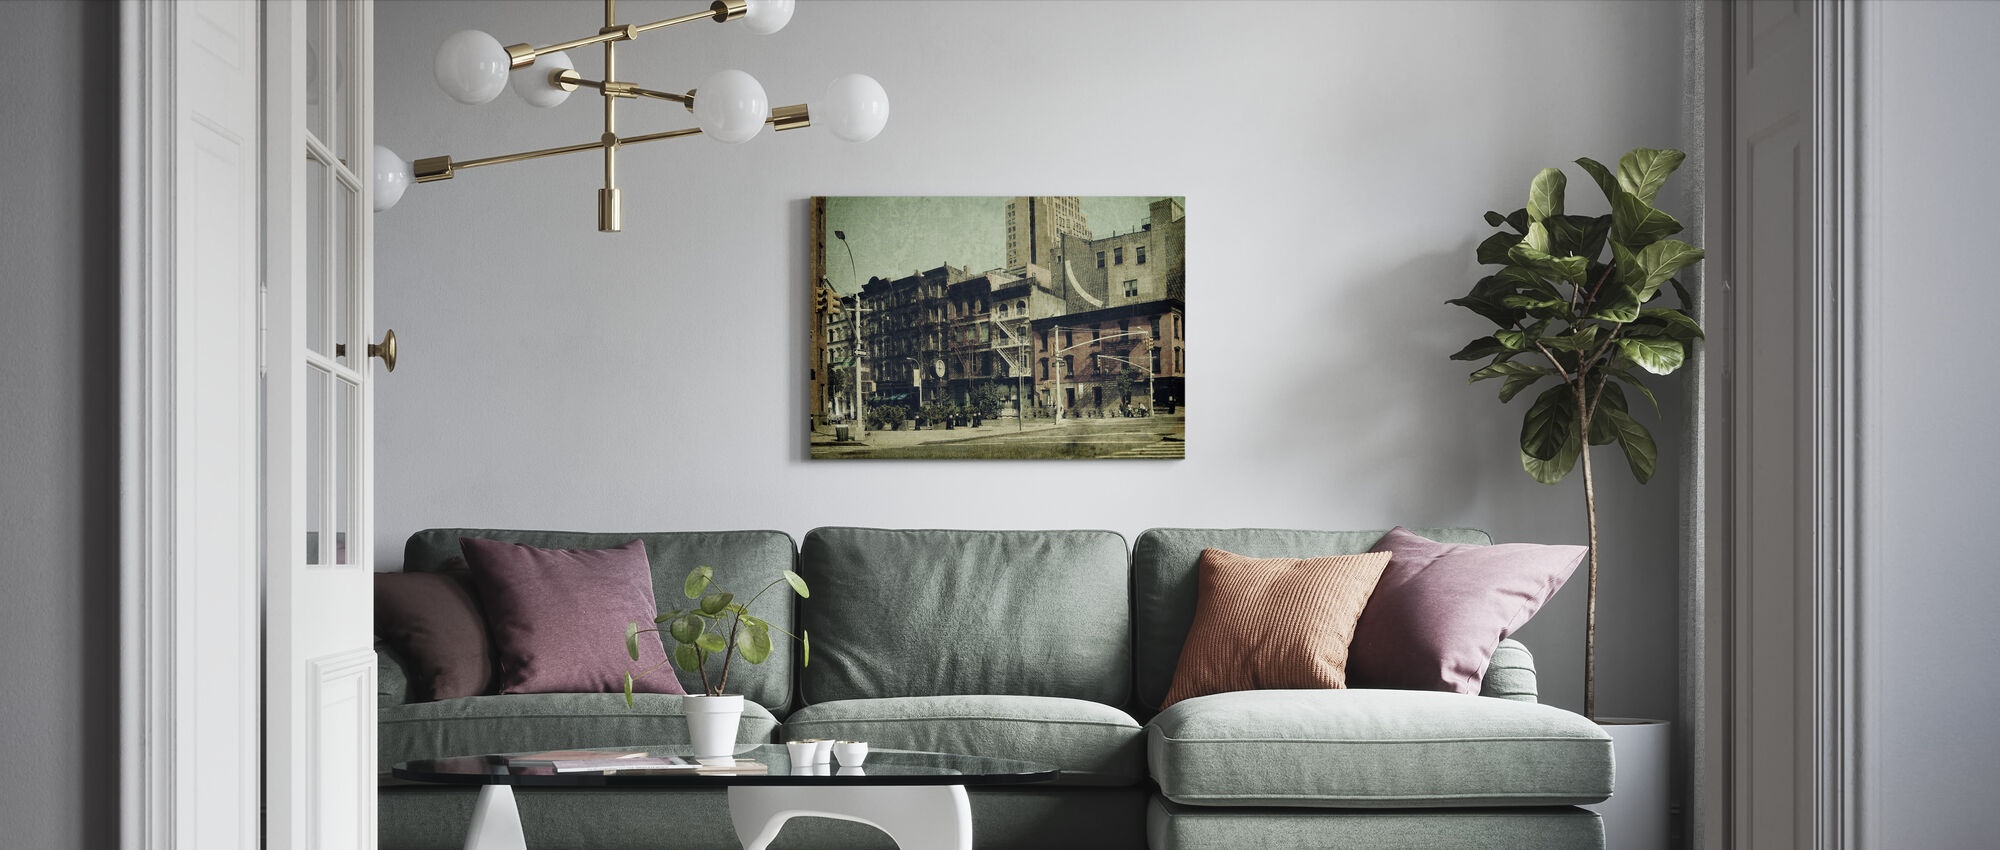 New York City - Sixth Avenue - Canvas print - Living Room